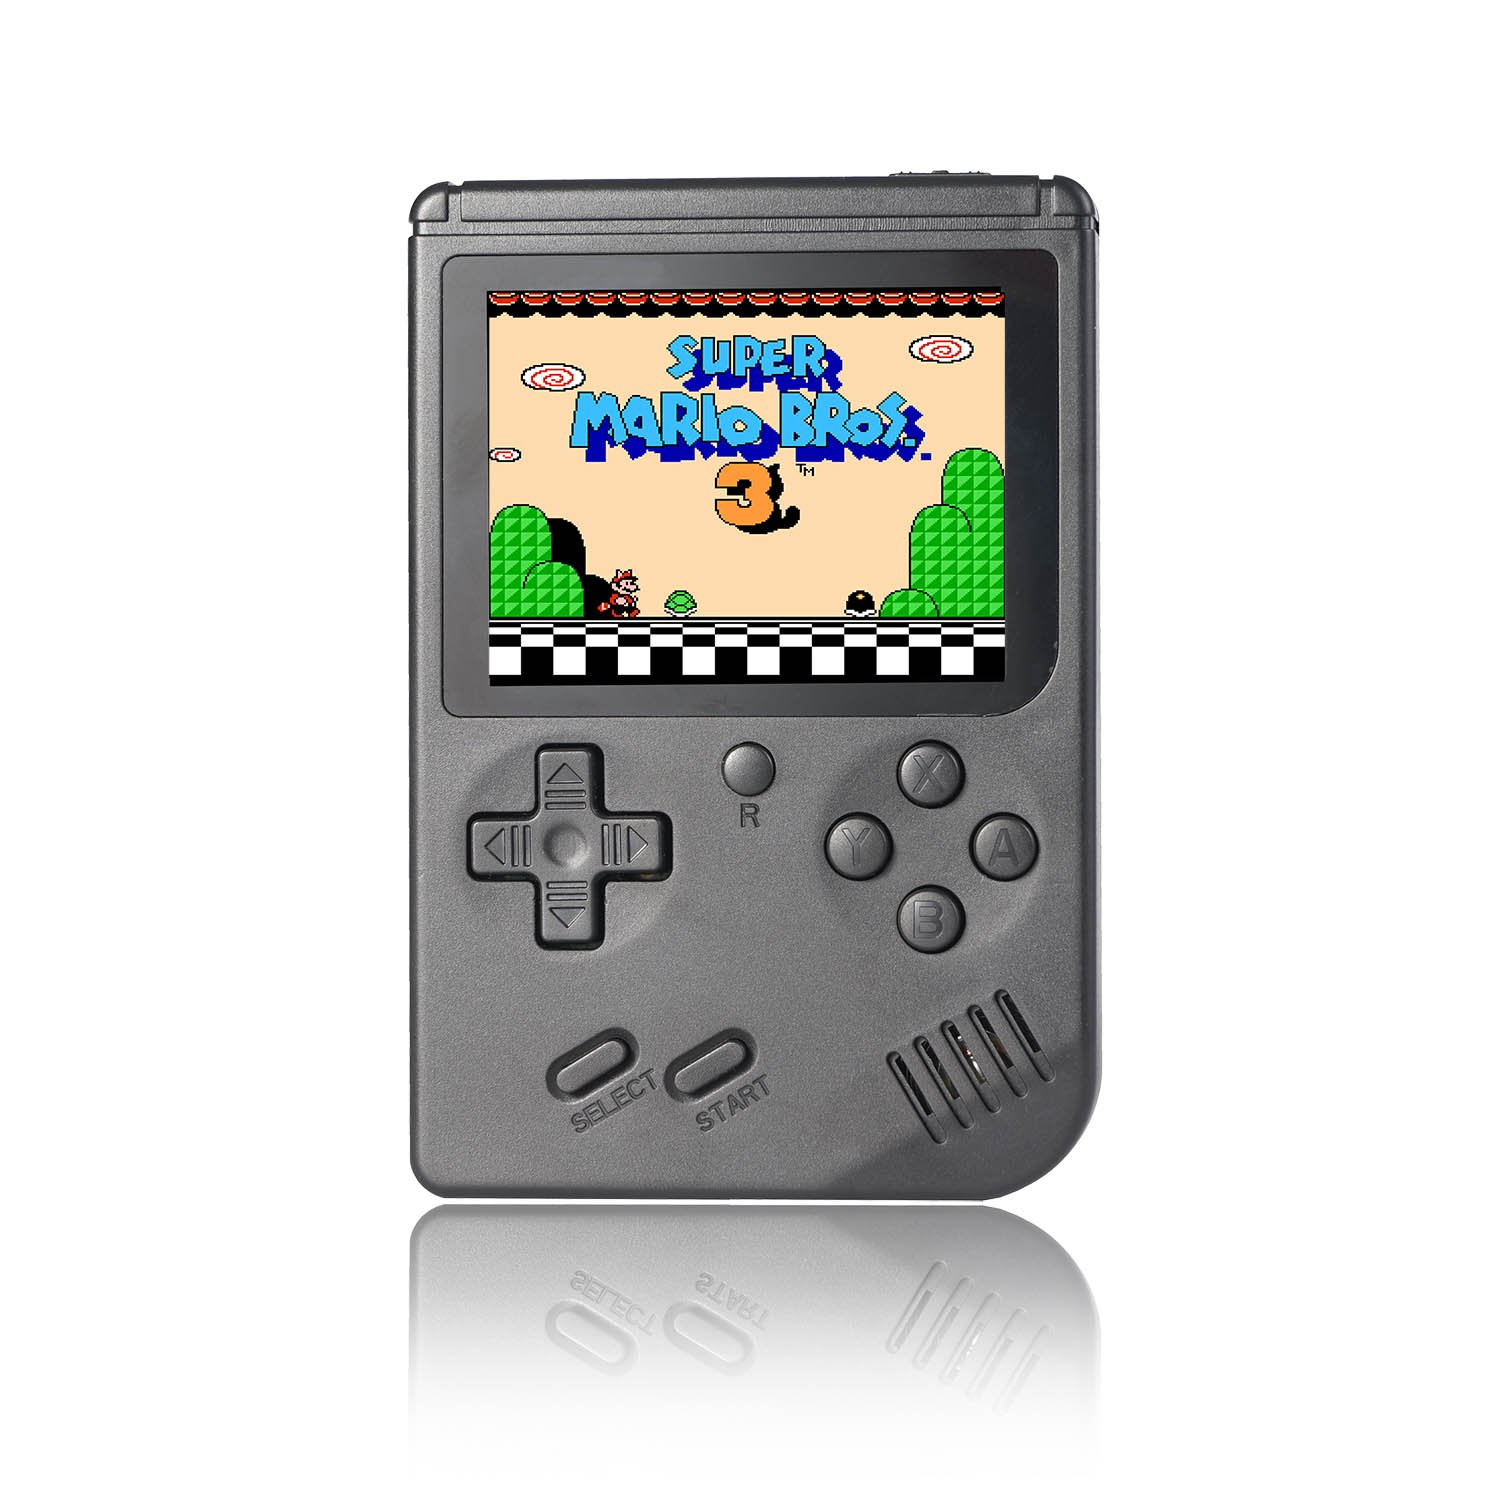 3 INCH HANDHELD - 168 IN 1 - 8-BIT RETRO FC PORTABLE GAME CONSOLE